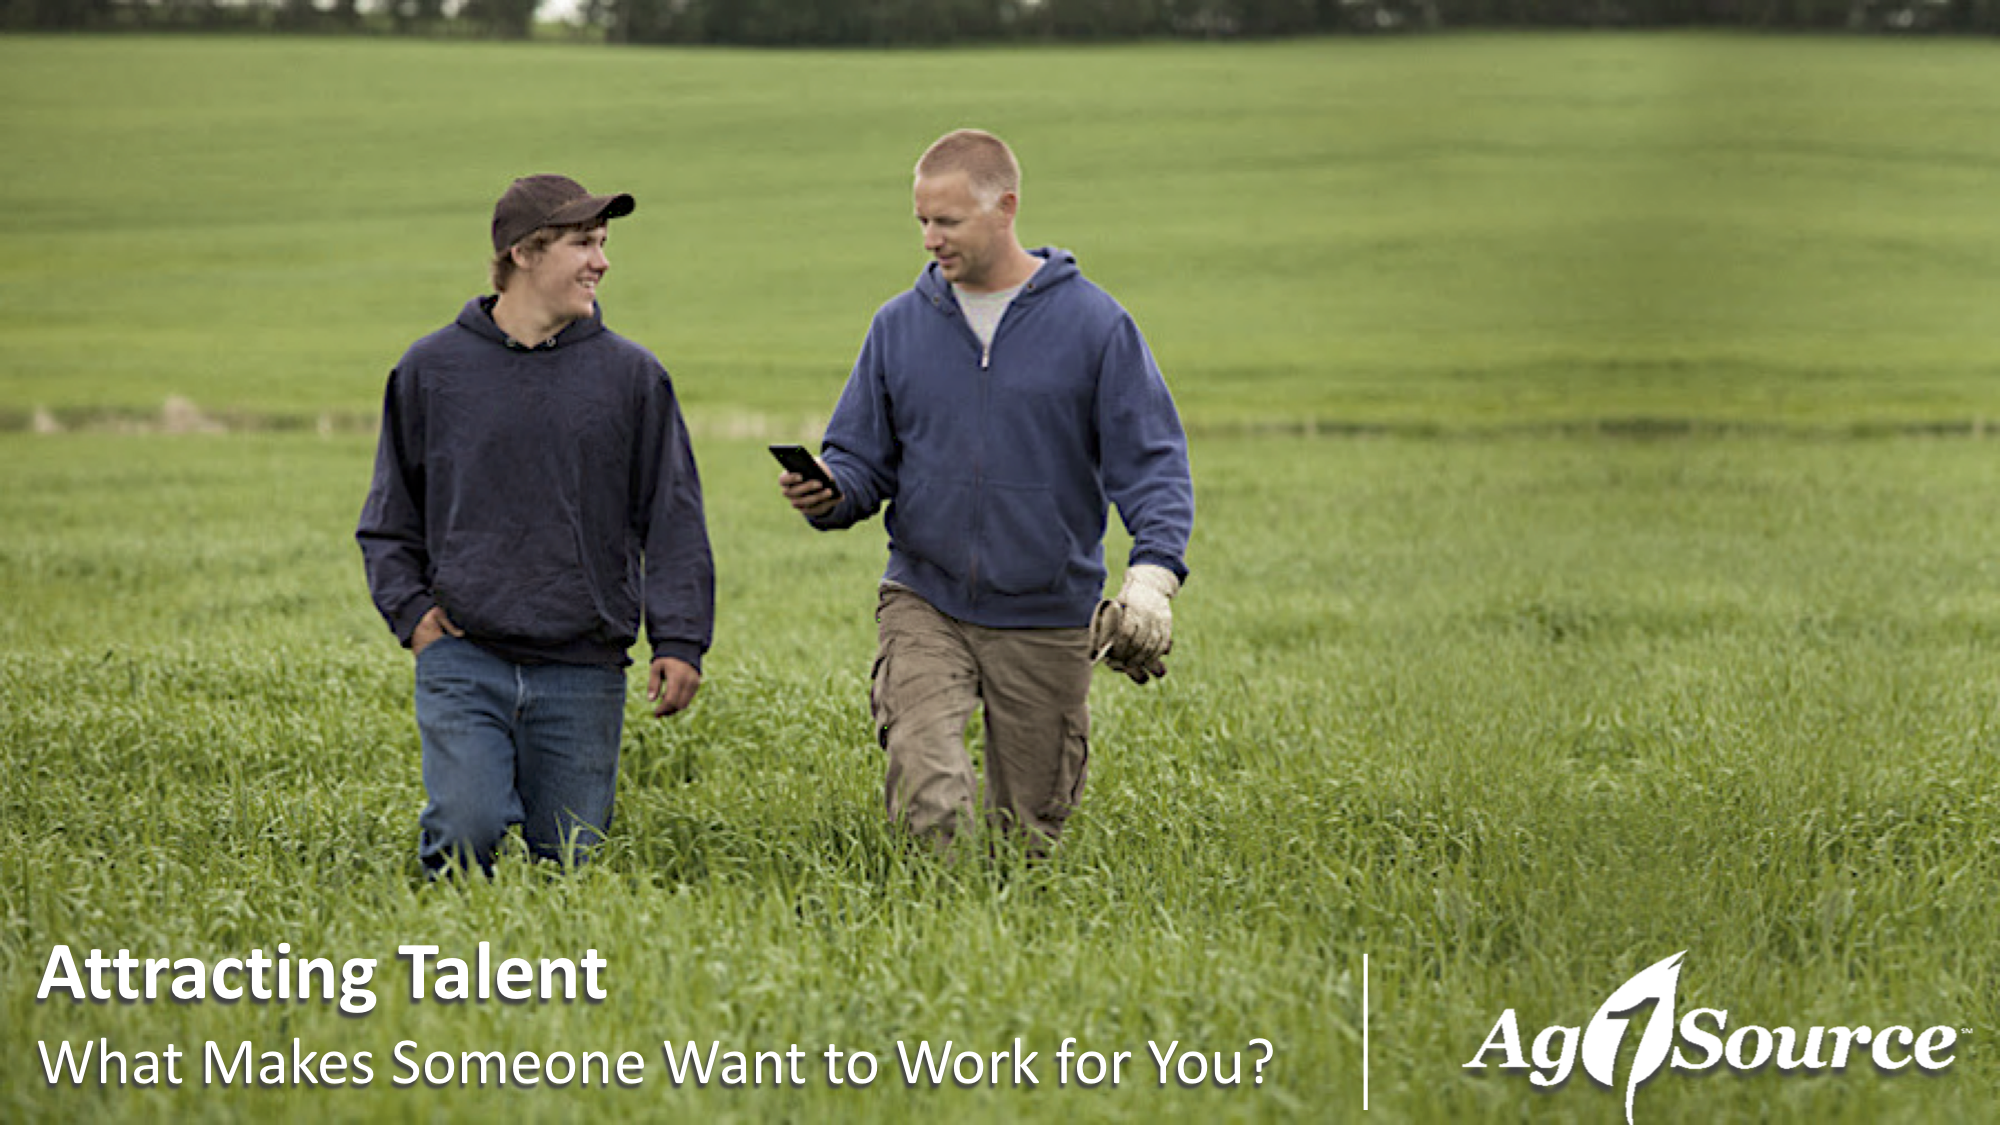 Agriculture manager walking with young employee in an open field.